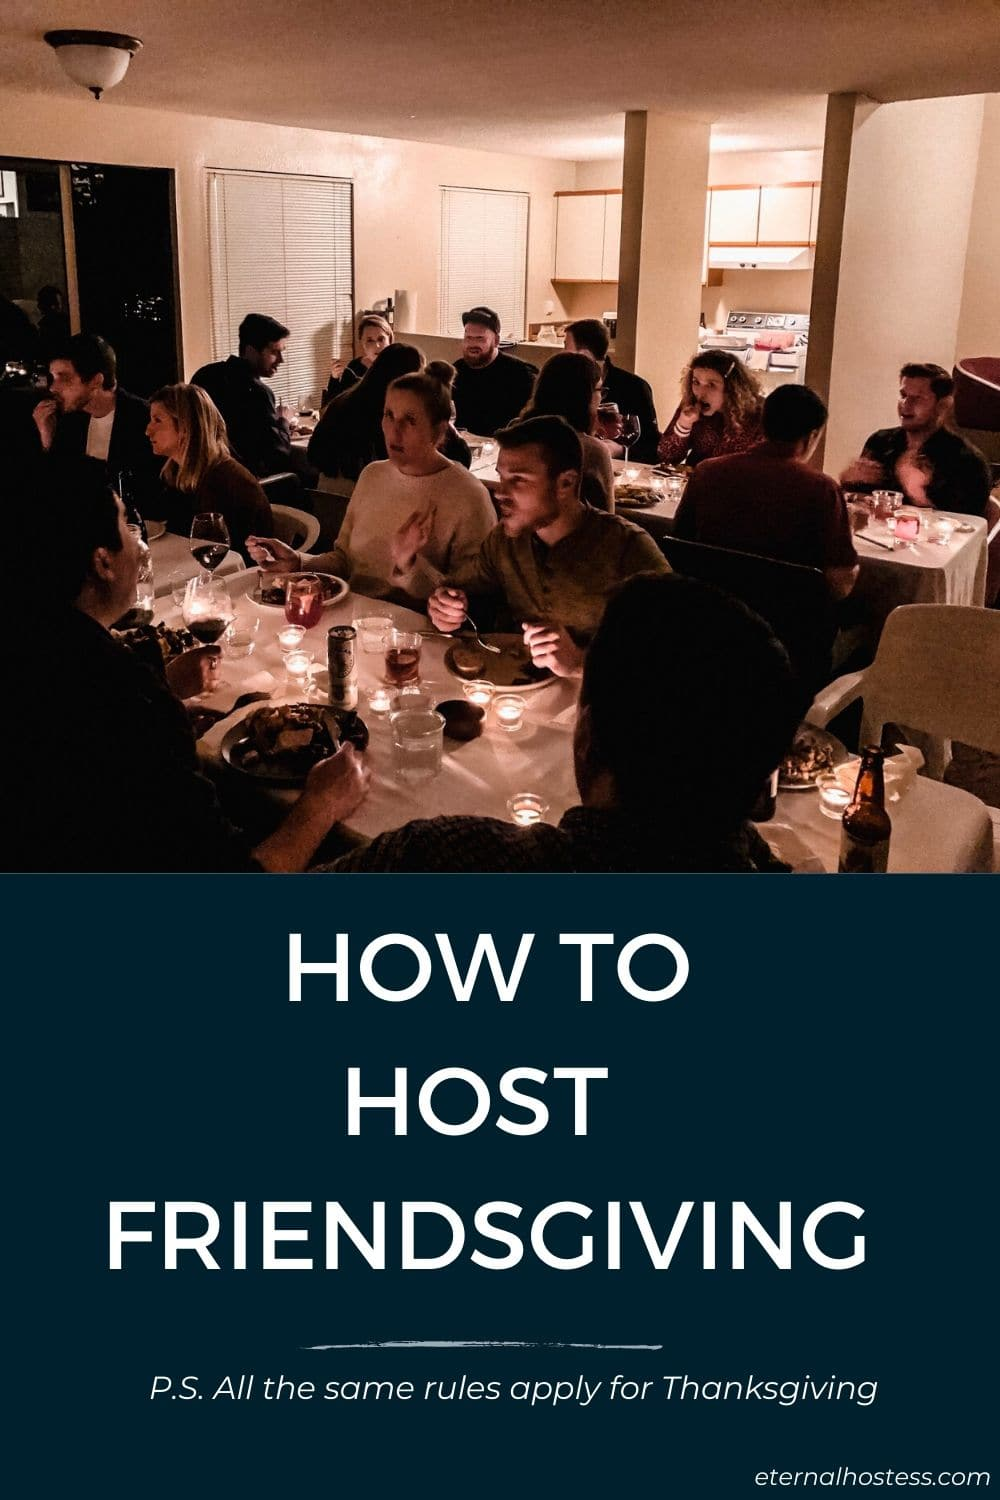 How to Host Friendsgiving. Oh, and all these tips apply to Thanksgiving, too.